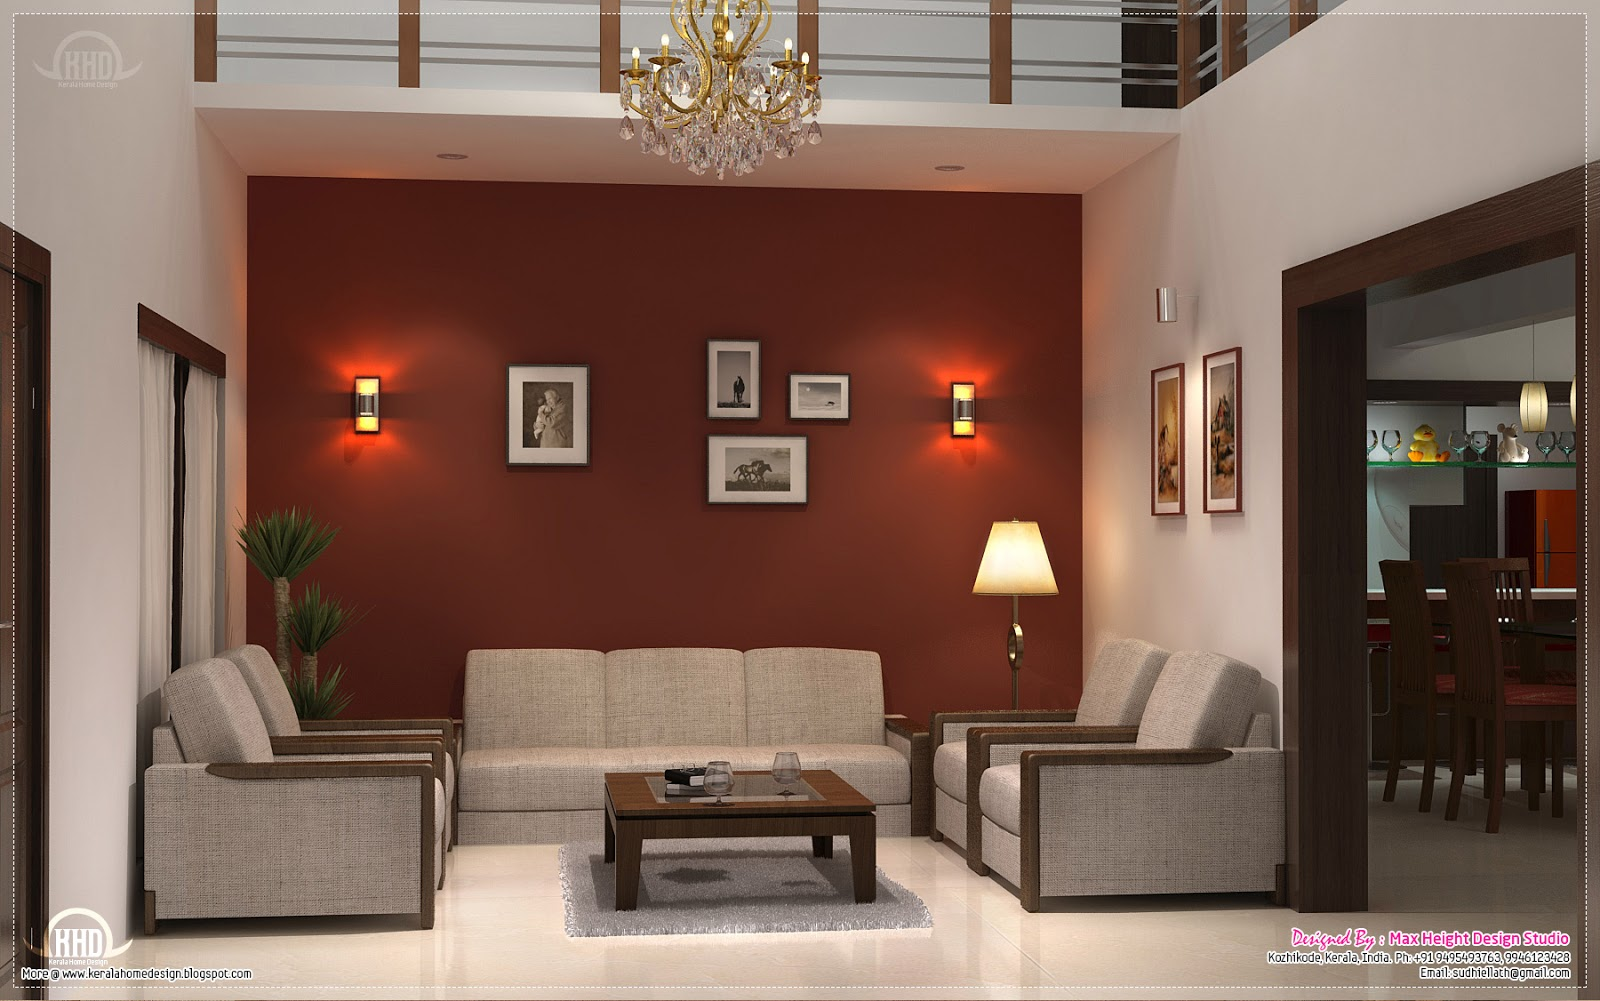 Home interior design ideas kerala home design and floor for 2 living room design